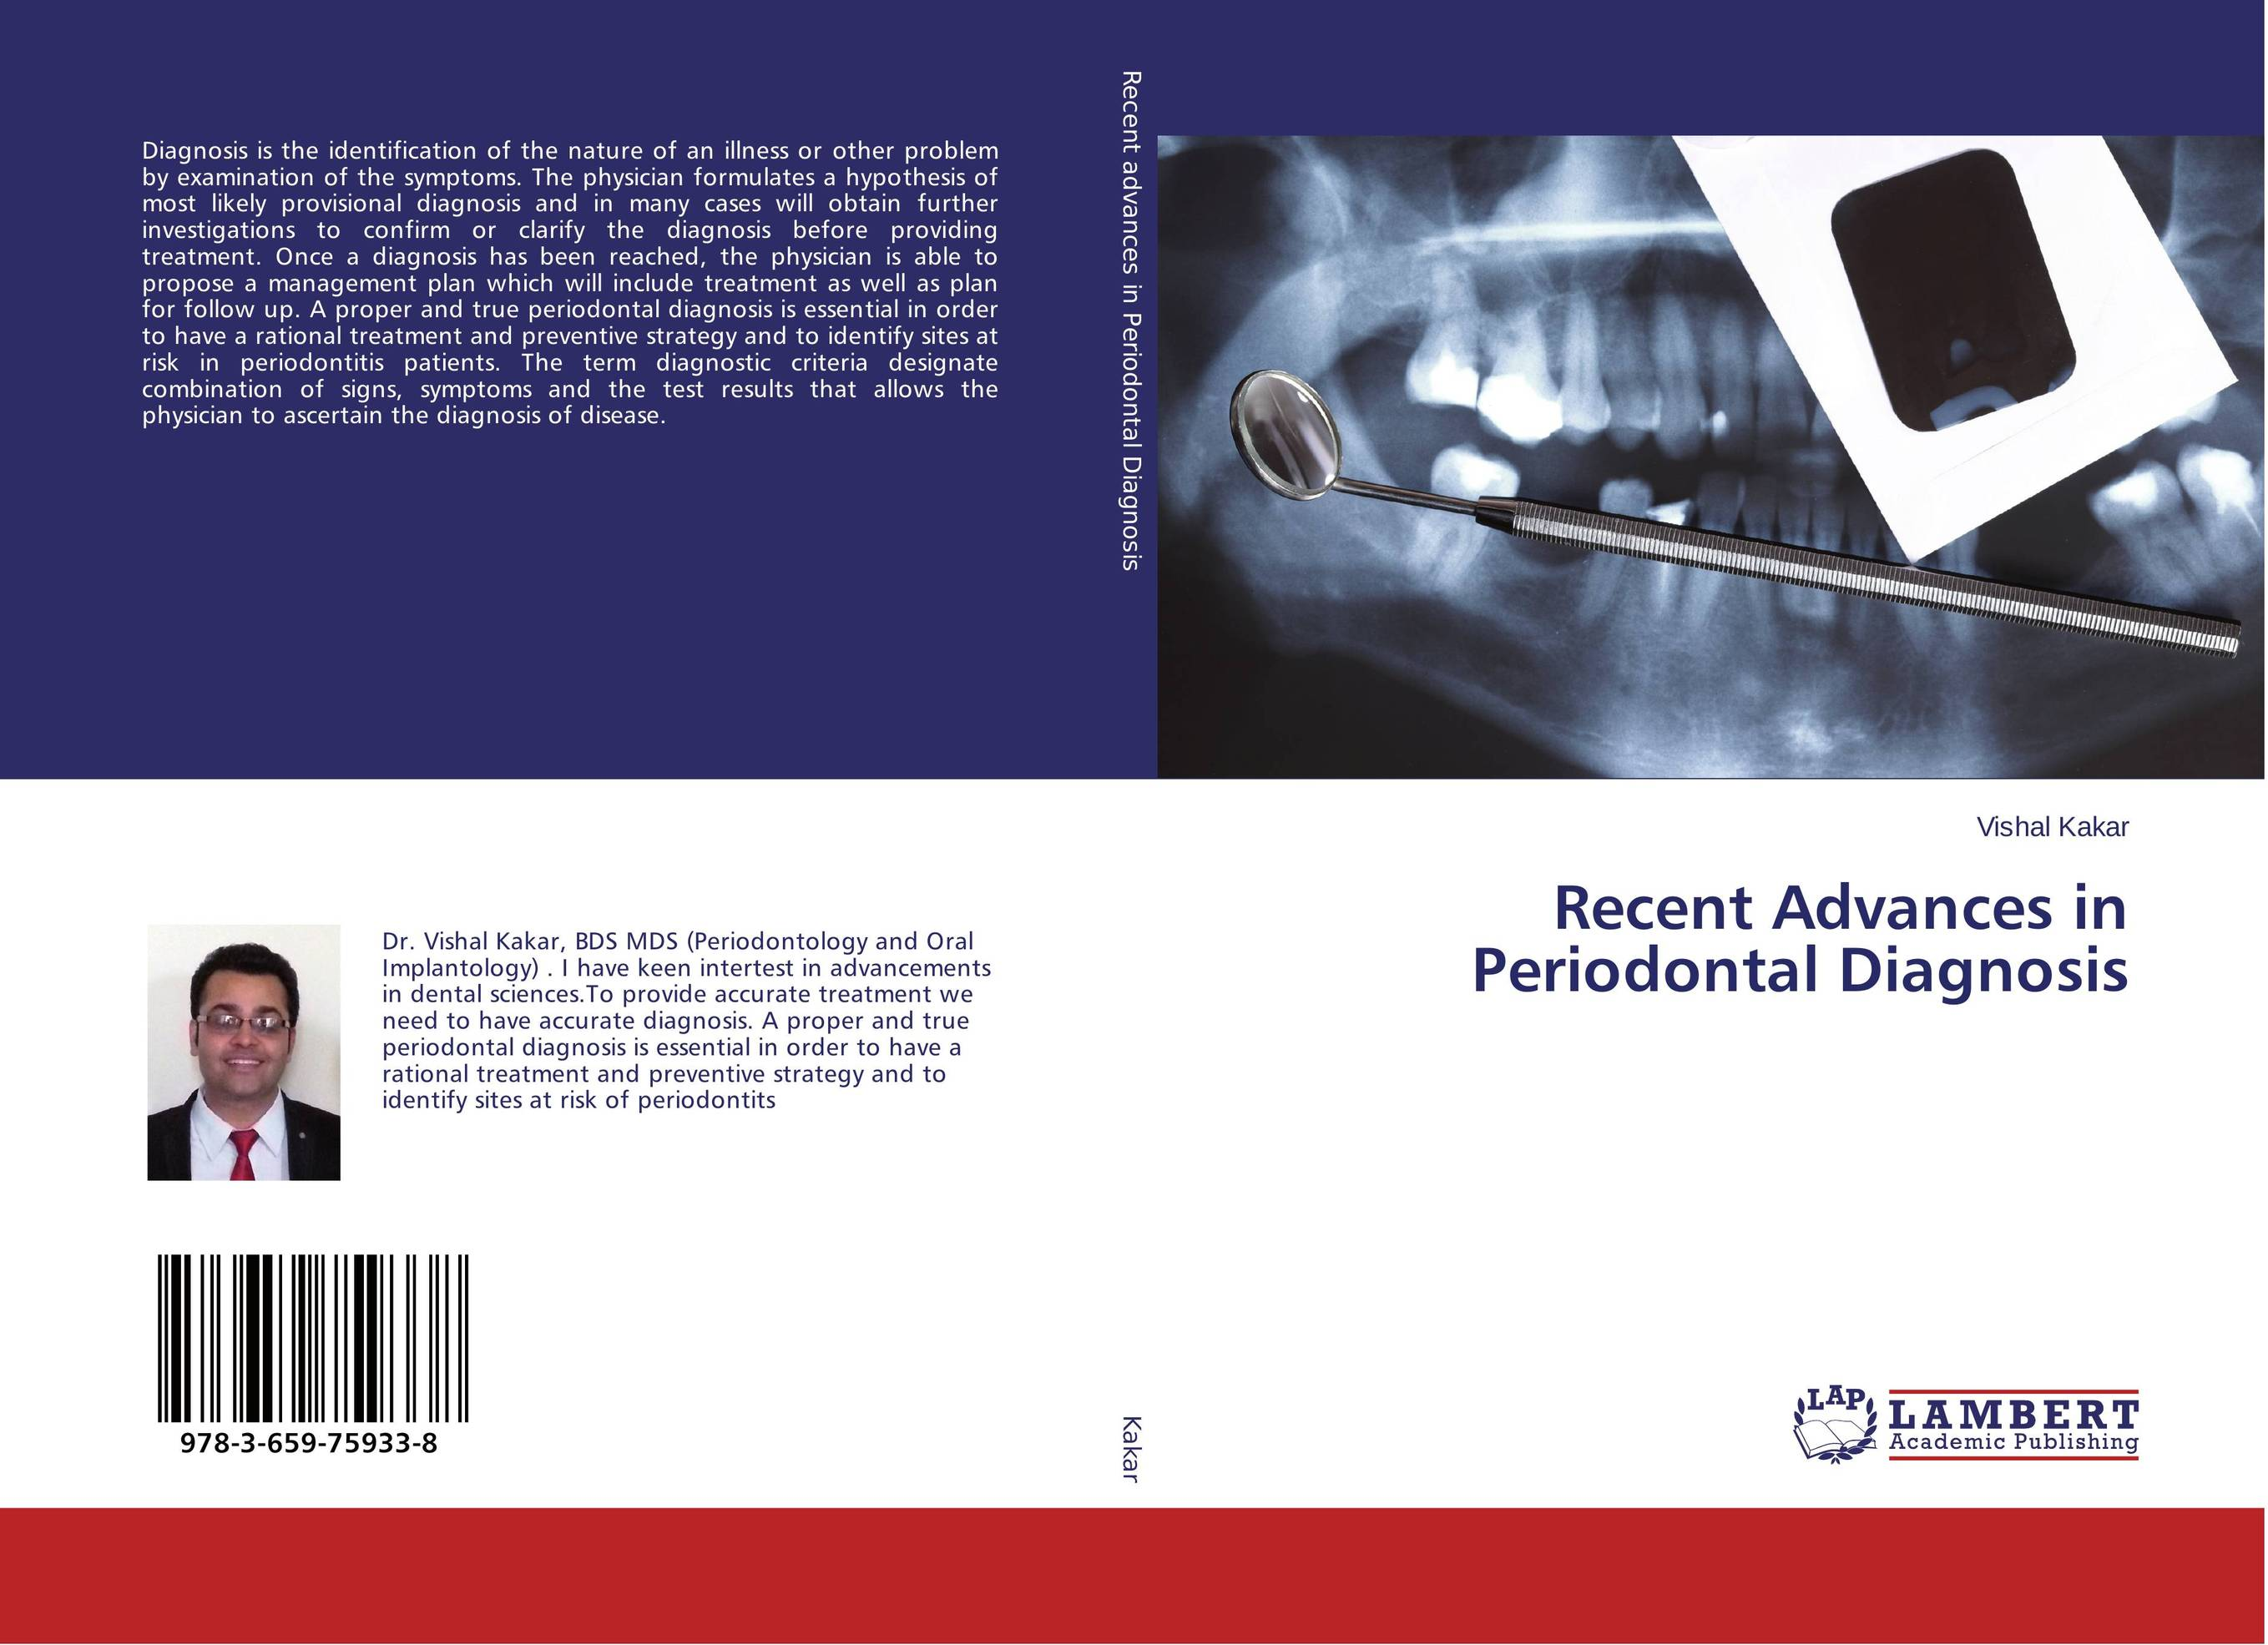 Recent Advances in Periodontal Diagnosis